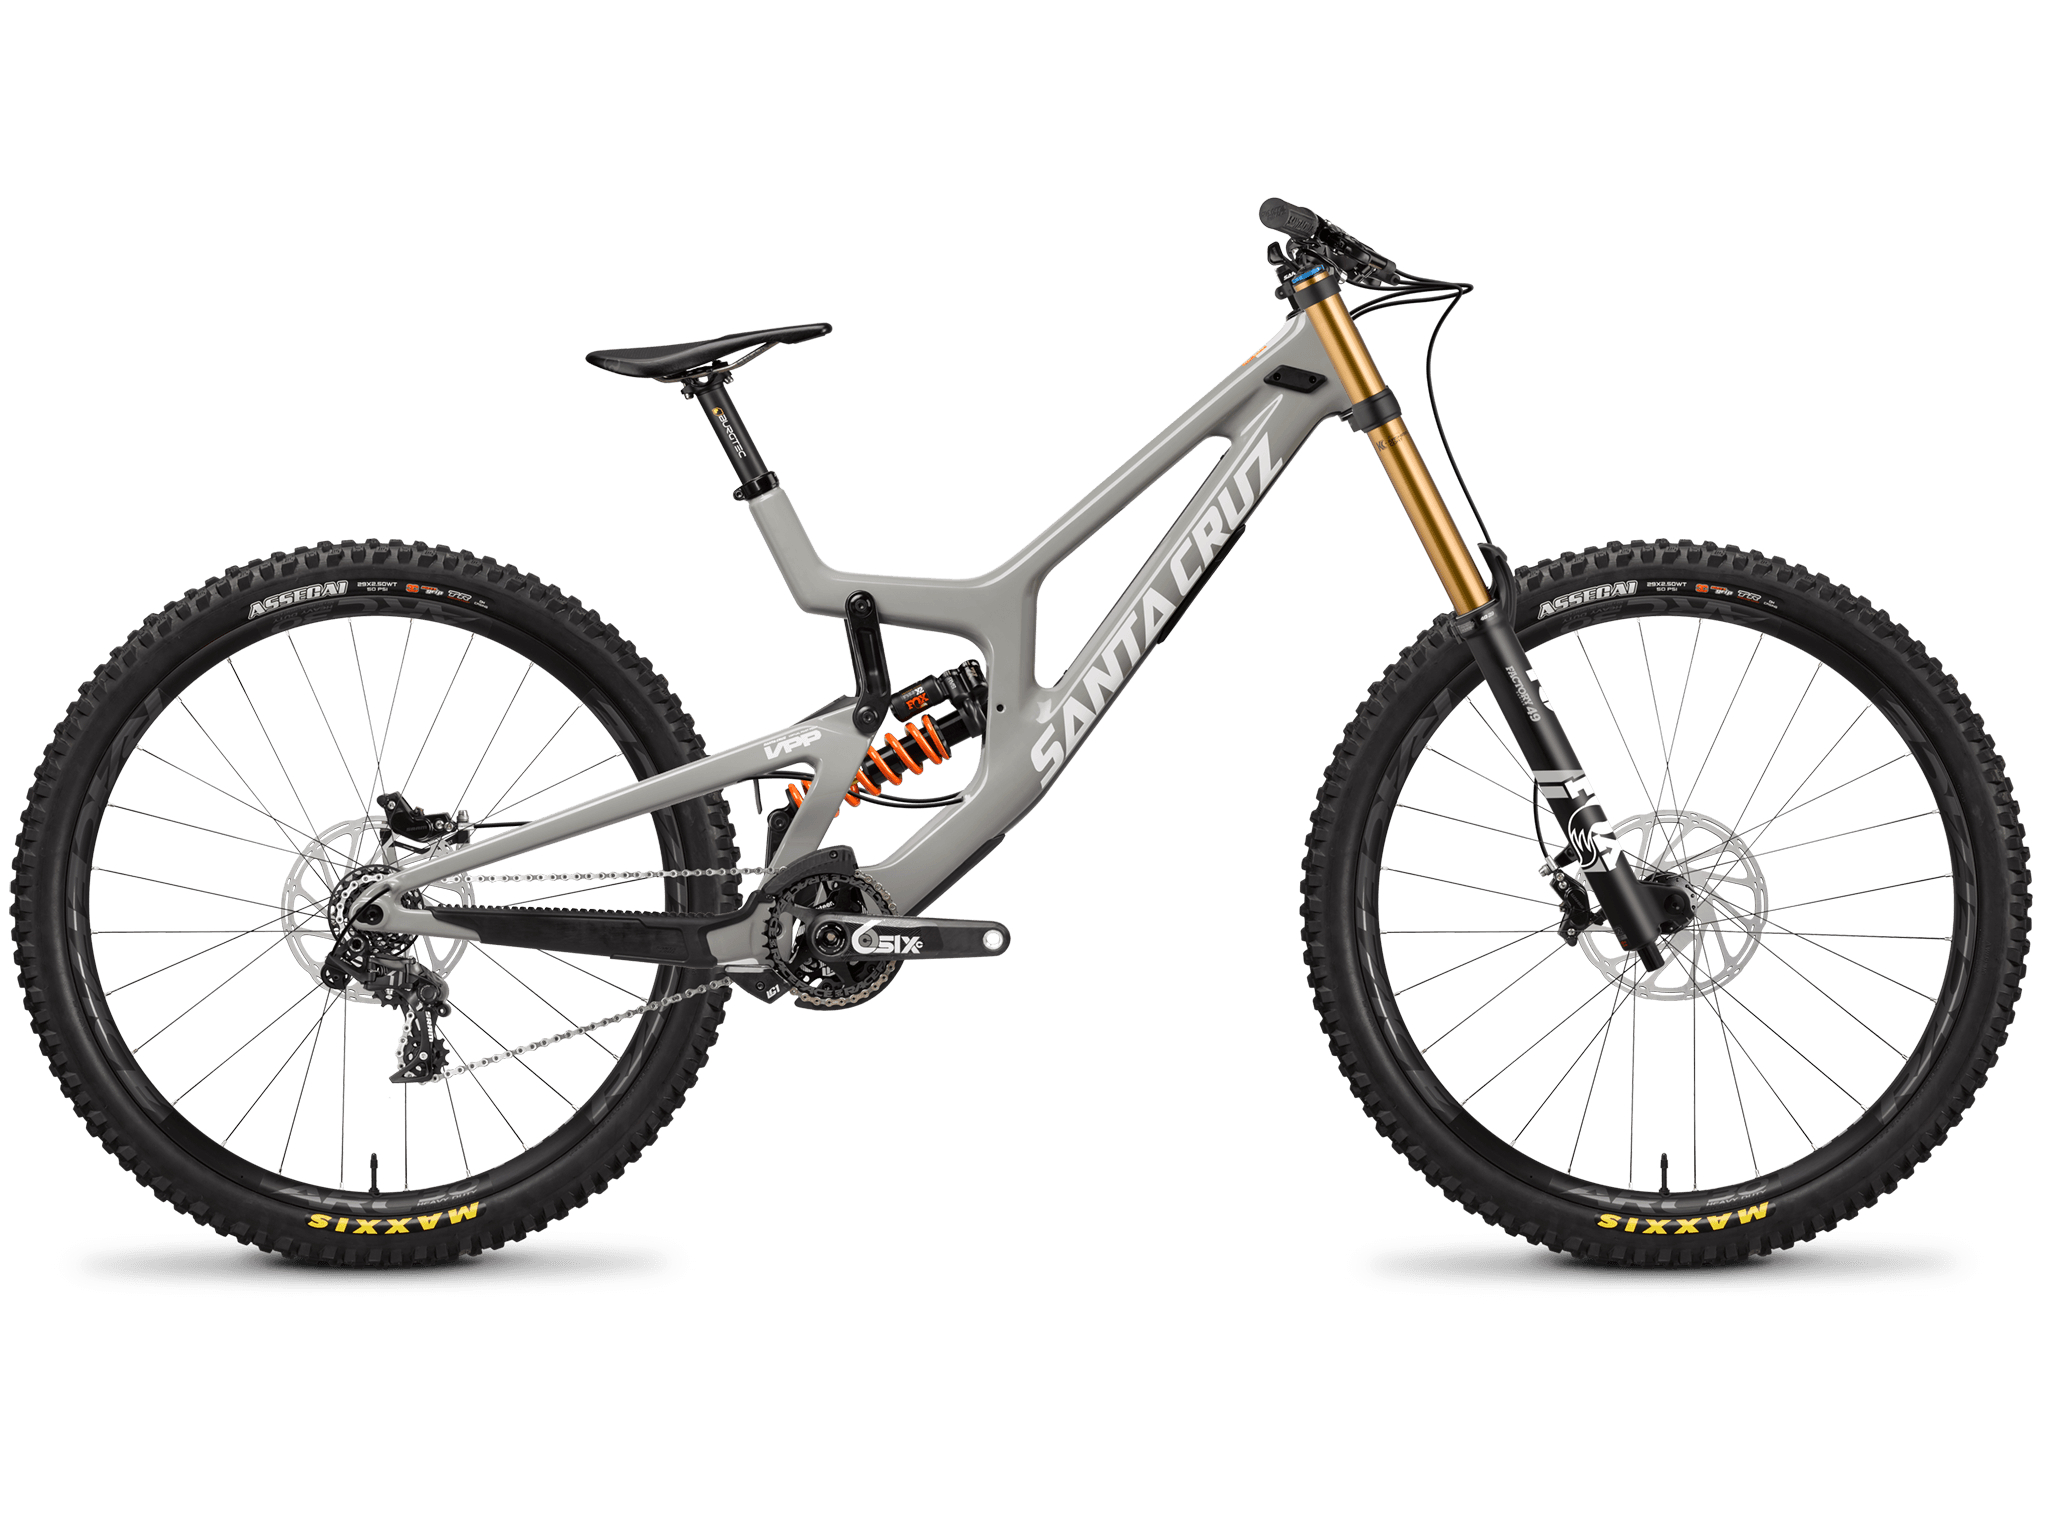 Santa Cruz V10 full-suspension bike.